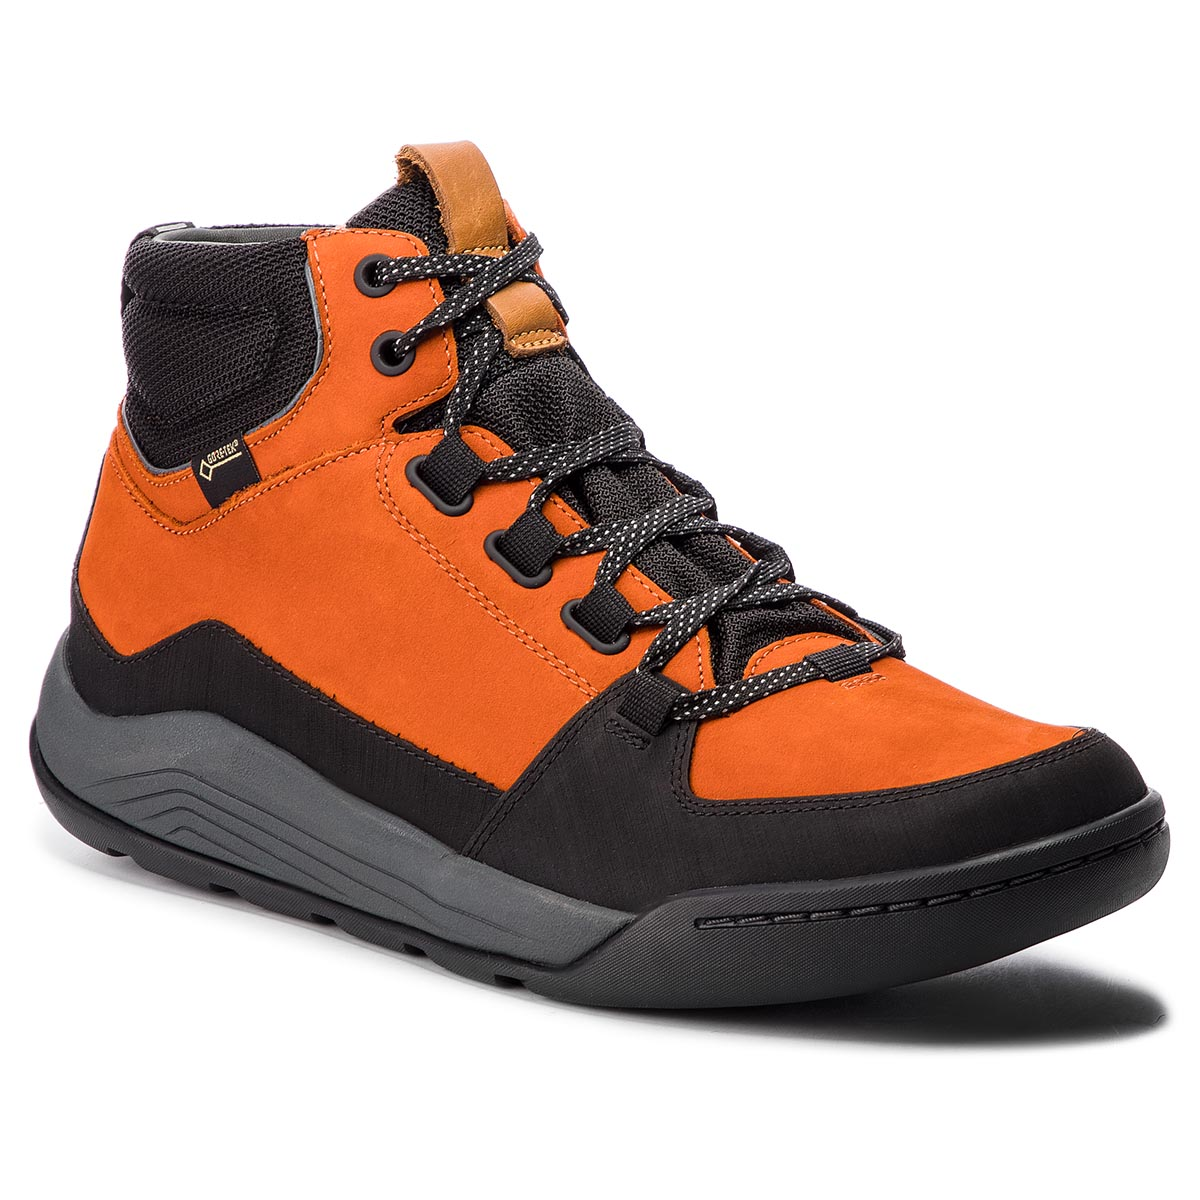 Ghete CLARKS - AshcombeArkGtx GORE-TEX 261354137 Burnt Orange